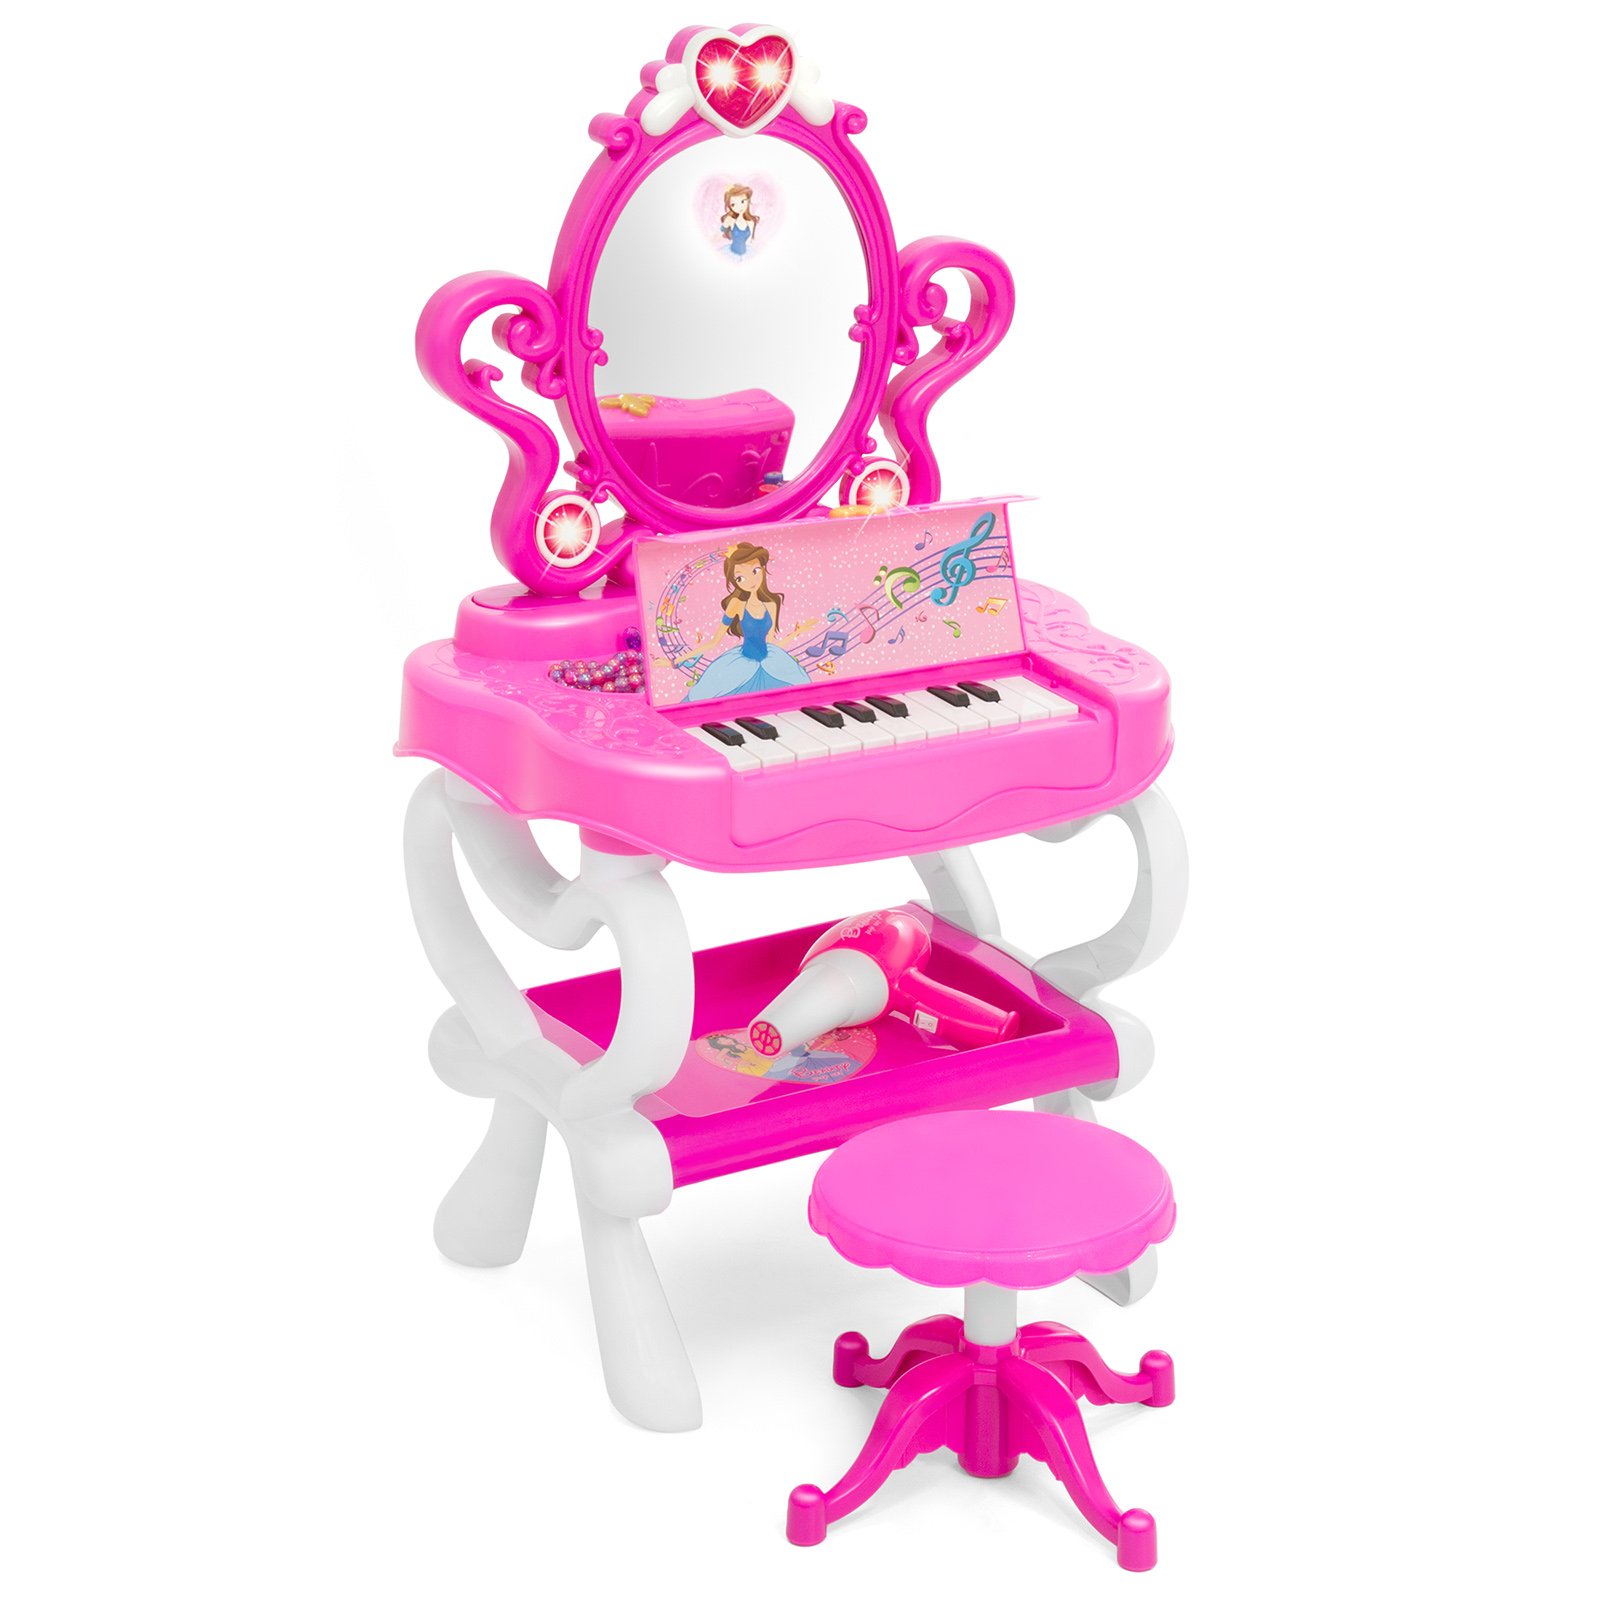 vanity set for girls. Best Choice Products 2 In 1 Kids Vanity Set Girls Toy W  16 Piece Beauty Accessories Functional Piano Keyboard Flashing Lights